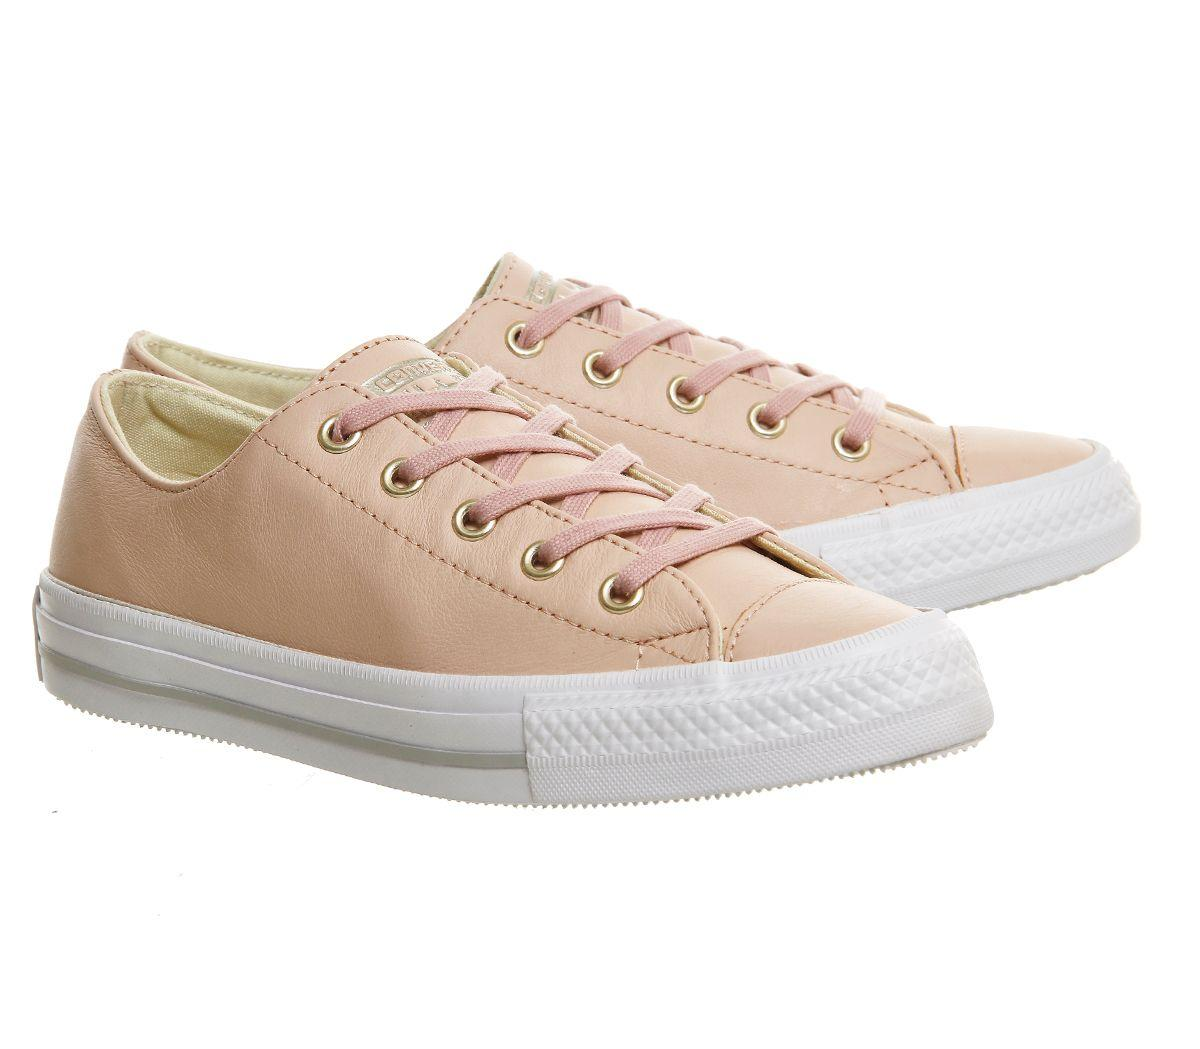 Converse Ctas Gemma Low Leather Trainers in Beige (Natural)